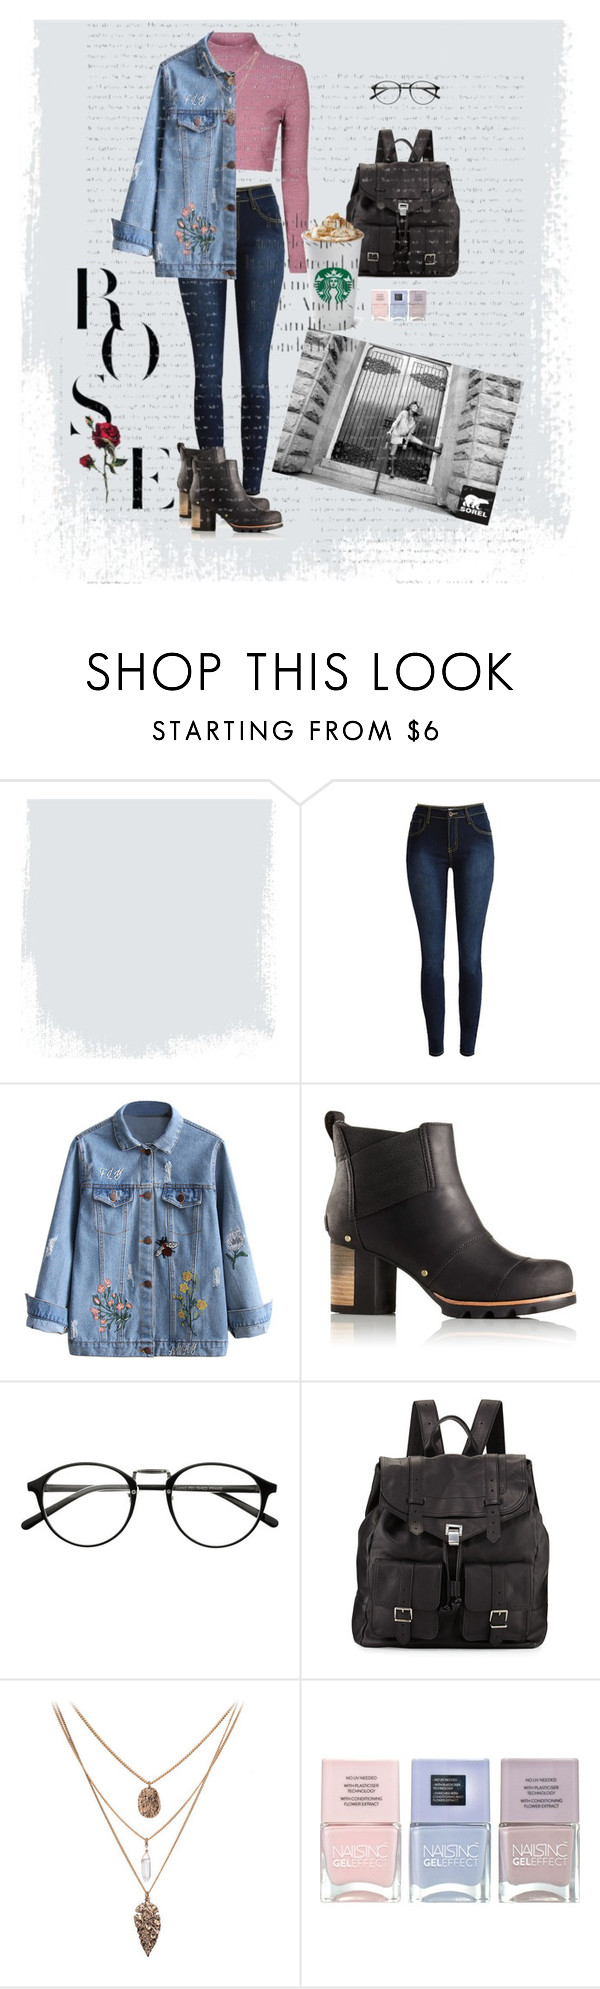 """""""Kick Up the Leaves (Stylishly) With SOREL: CONTEST ENTRY"""" by beachang ❤ liked on Polyvore featuring SOREL, Proenza Schouler, Nails Inc. and sorelstyle"""